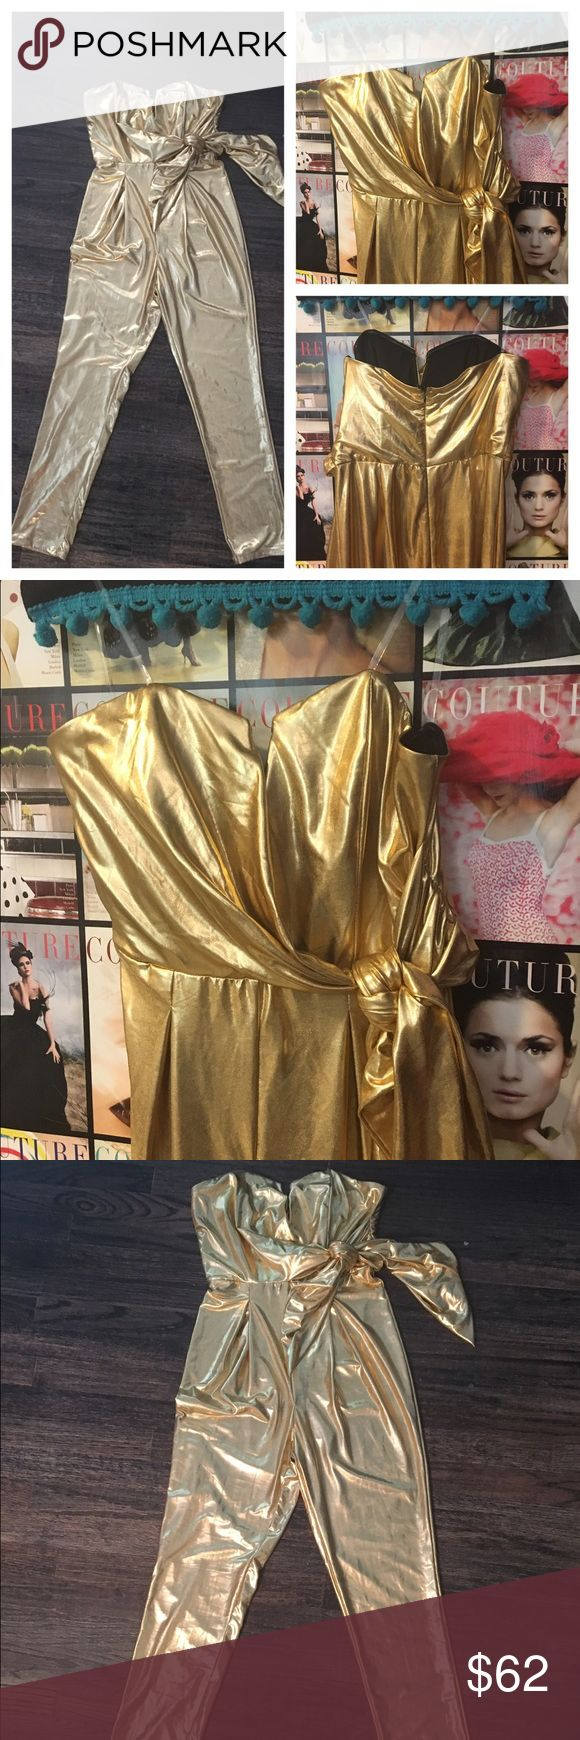 Nwts Nordstrom gold szS jumpsuit💰 Brand new Nordstrom gold jumpsuit has stretch size small.  Brand new tags still attached. You know you need it💰 Mustard Seed Other